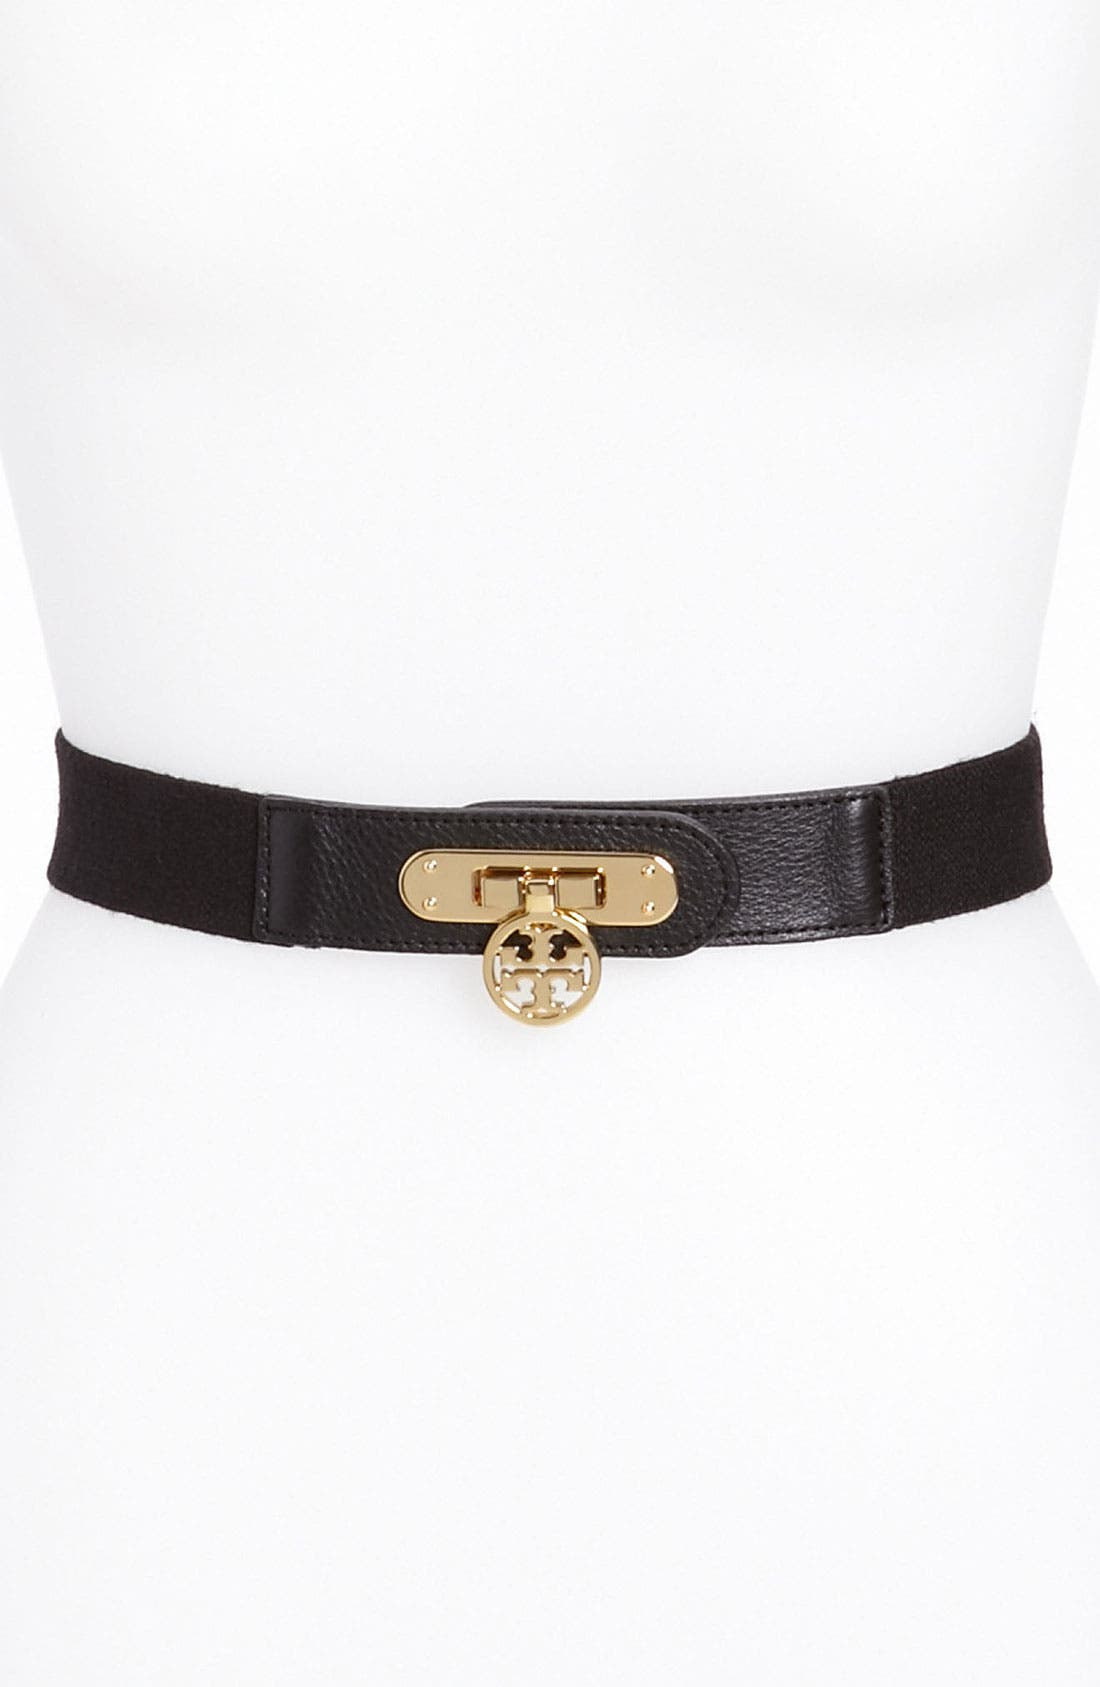 Alternate Image 1 Selected - Tory Burch 'Daria' Stretch Belt